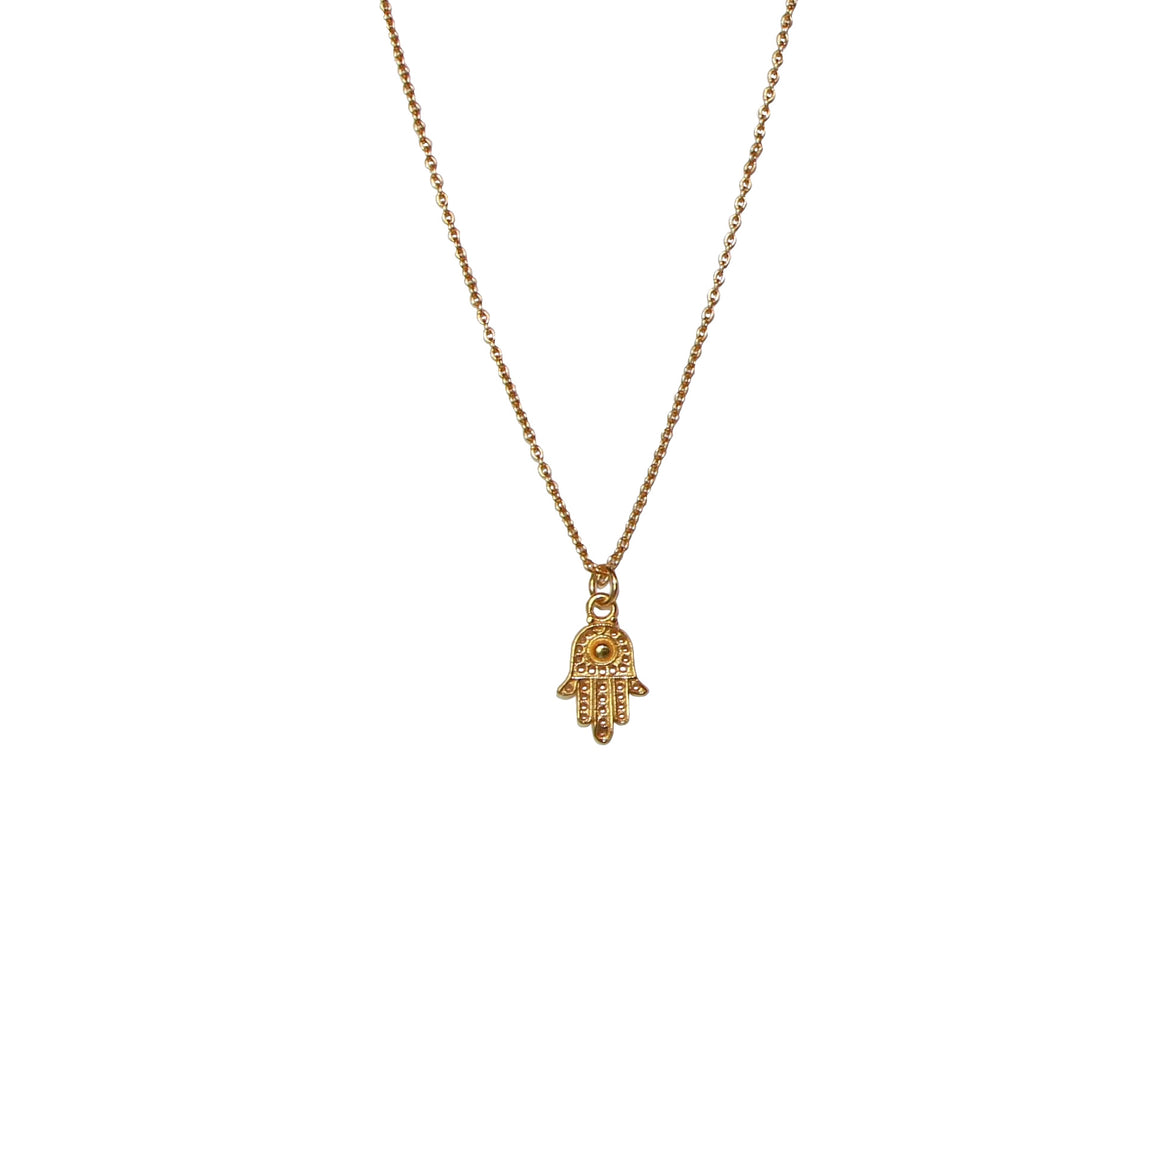 gold Hamsa hand necklace for protection by Karma Links Jewellery